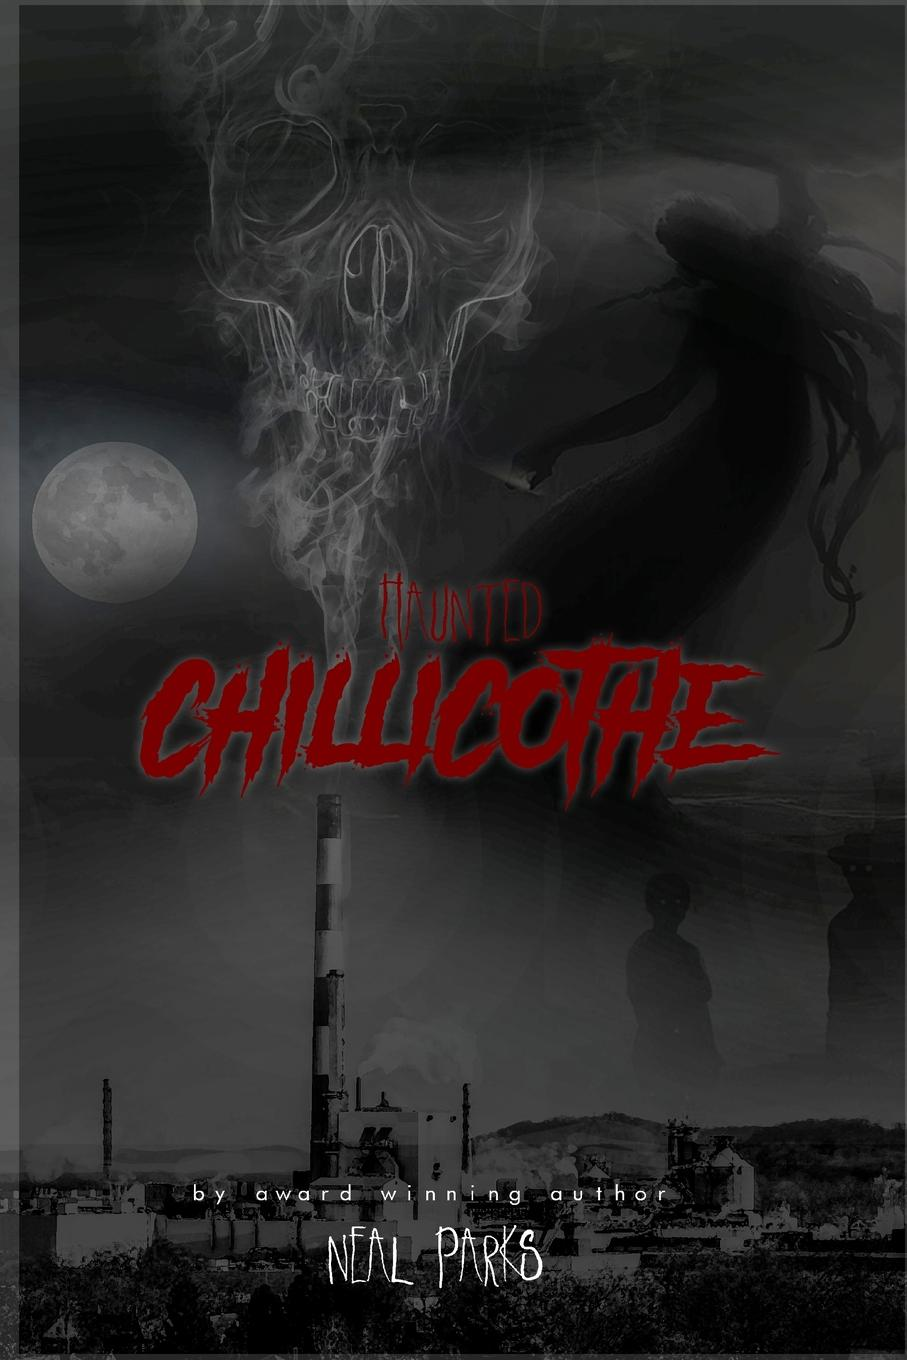 Neal Parks Haunted Chillicothe. True Ghost Stories, Tales, Legends and Folklore все цены